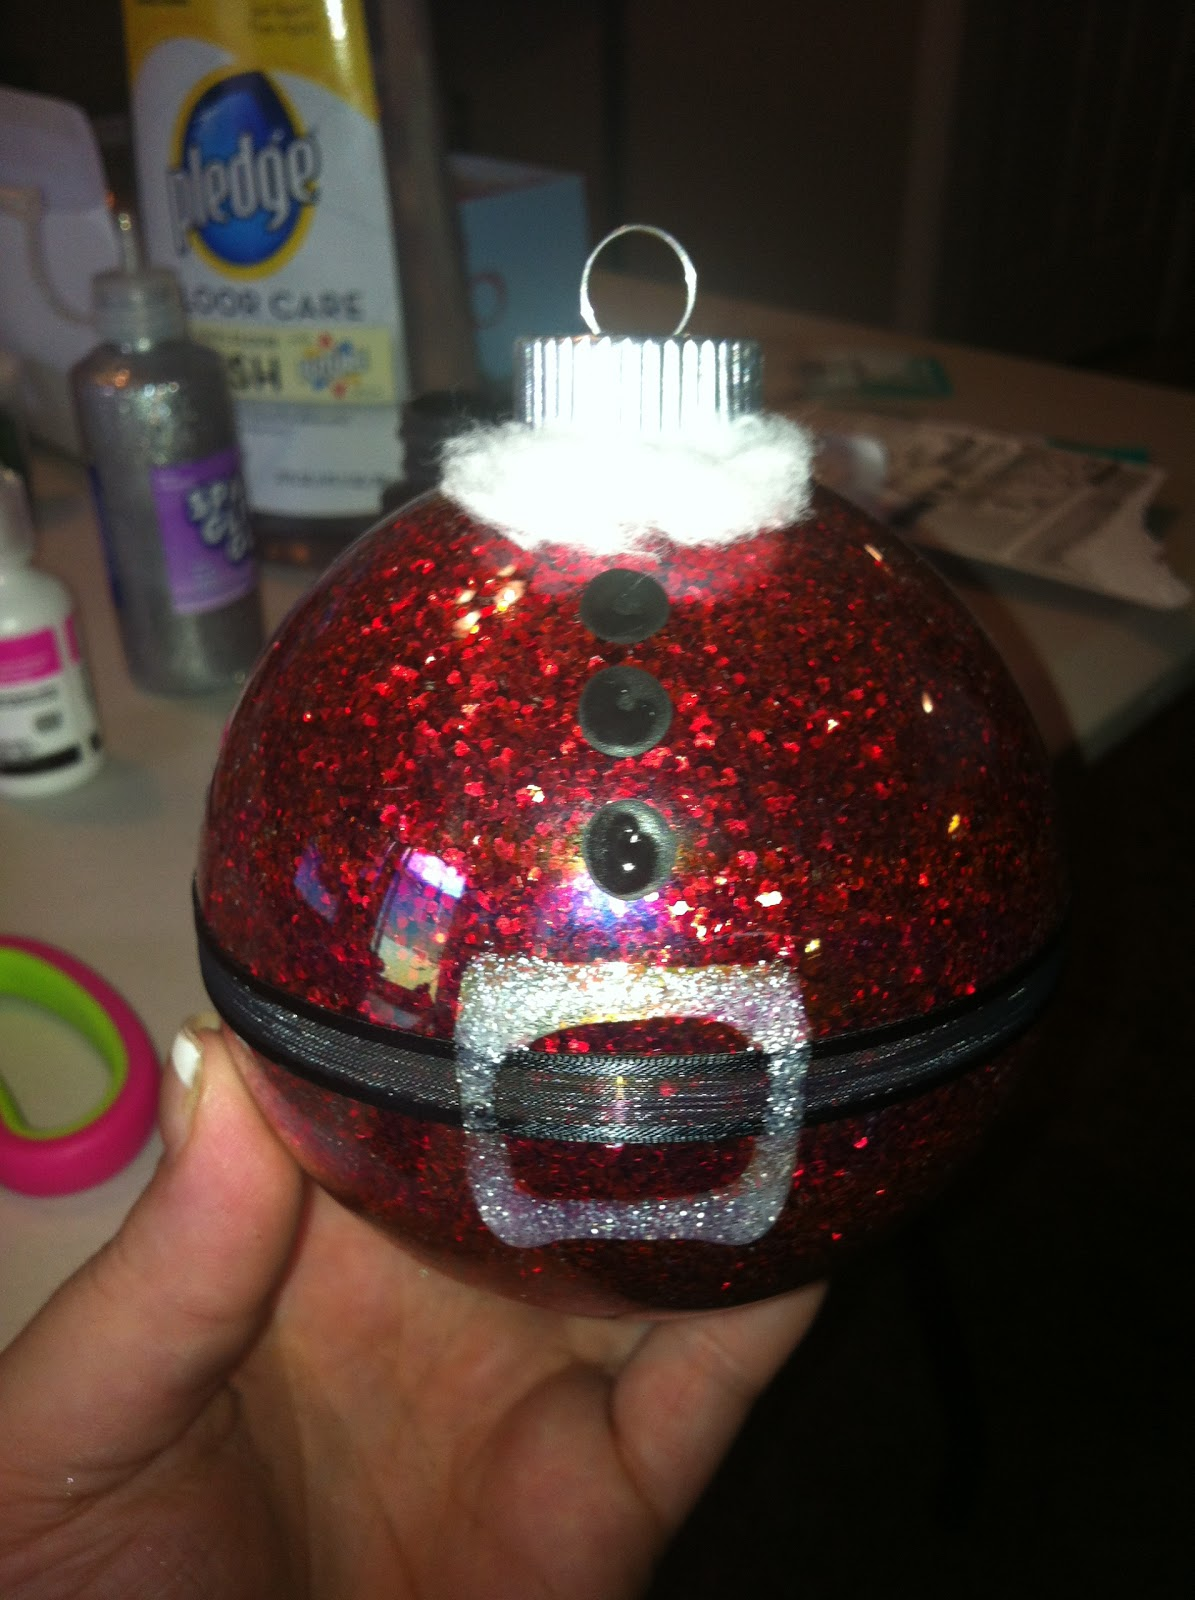 -Clear ornament balls -Red Glitter -Pledge floor care(will have a blue lid  and say